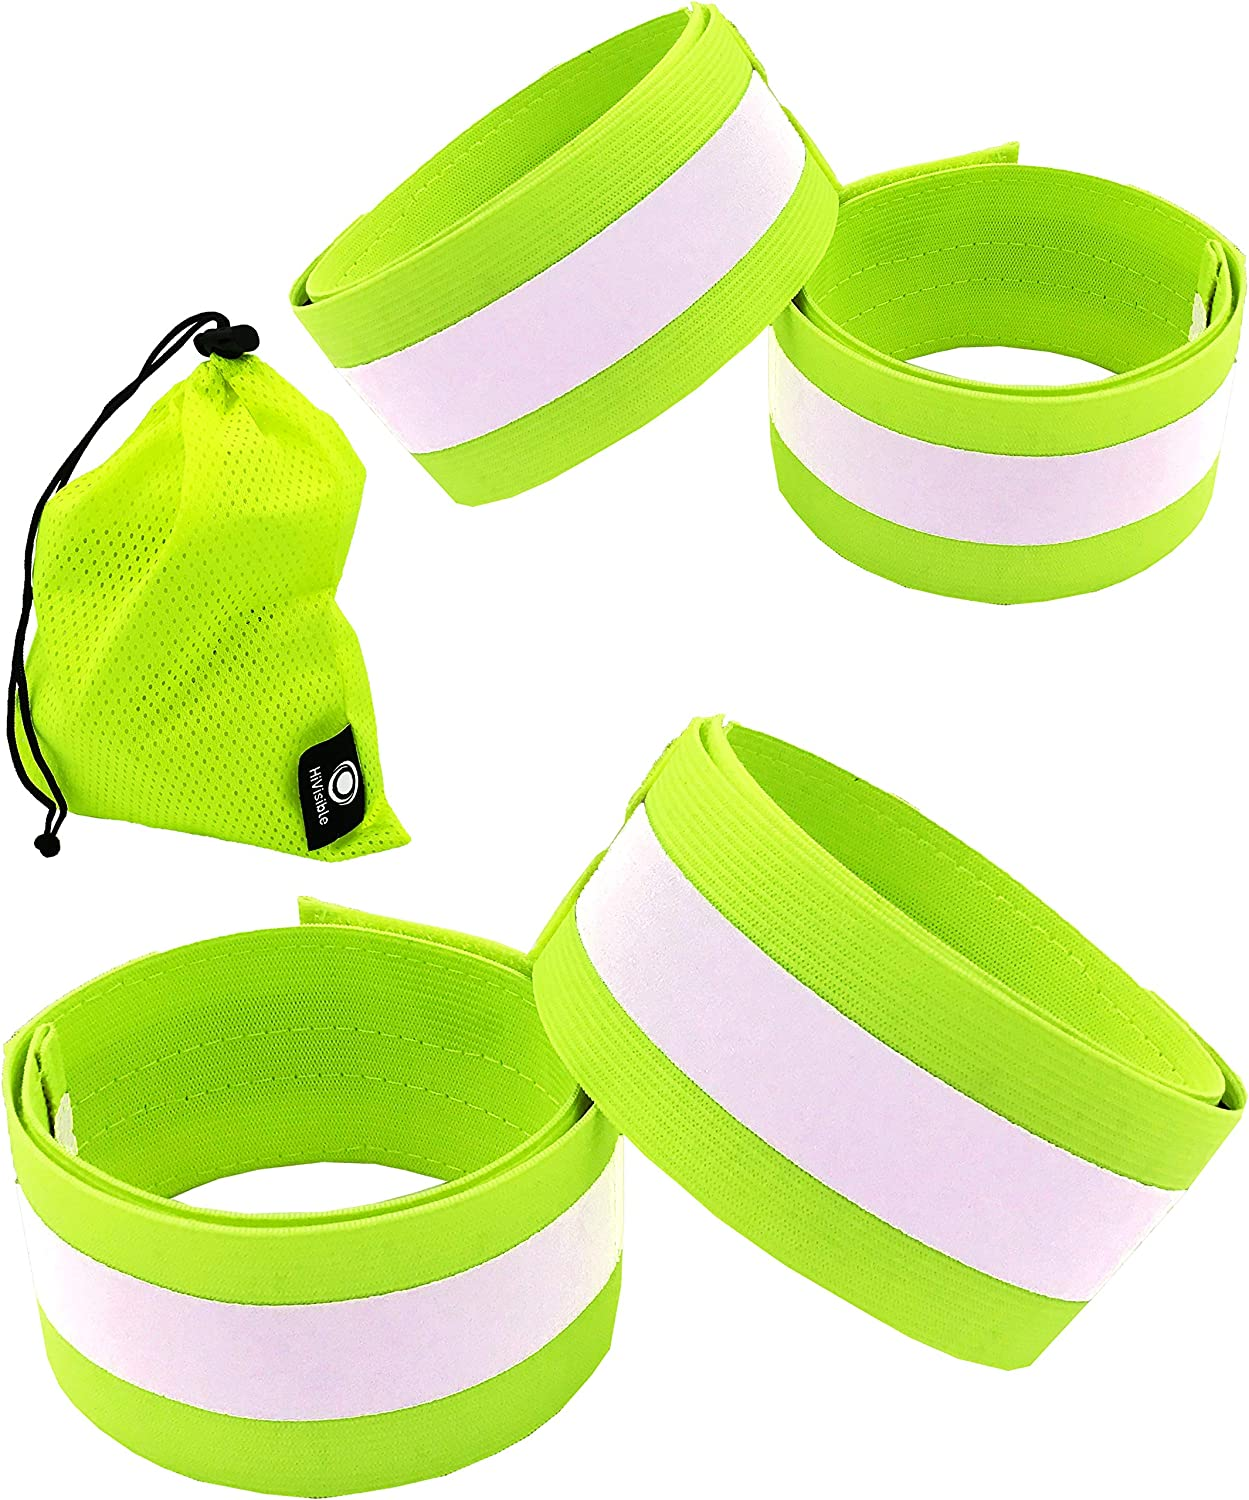 Reflective Bands for Arm, Wrist, Ankle, Leg. Reflector Bands. High Visibility Reflective Running Gear for Women and Men Cycling Walking Bike Safety Tape Straps - Bicycle Pants Clip, Cuff : Sports & Outdoors